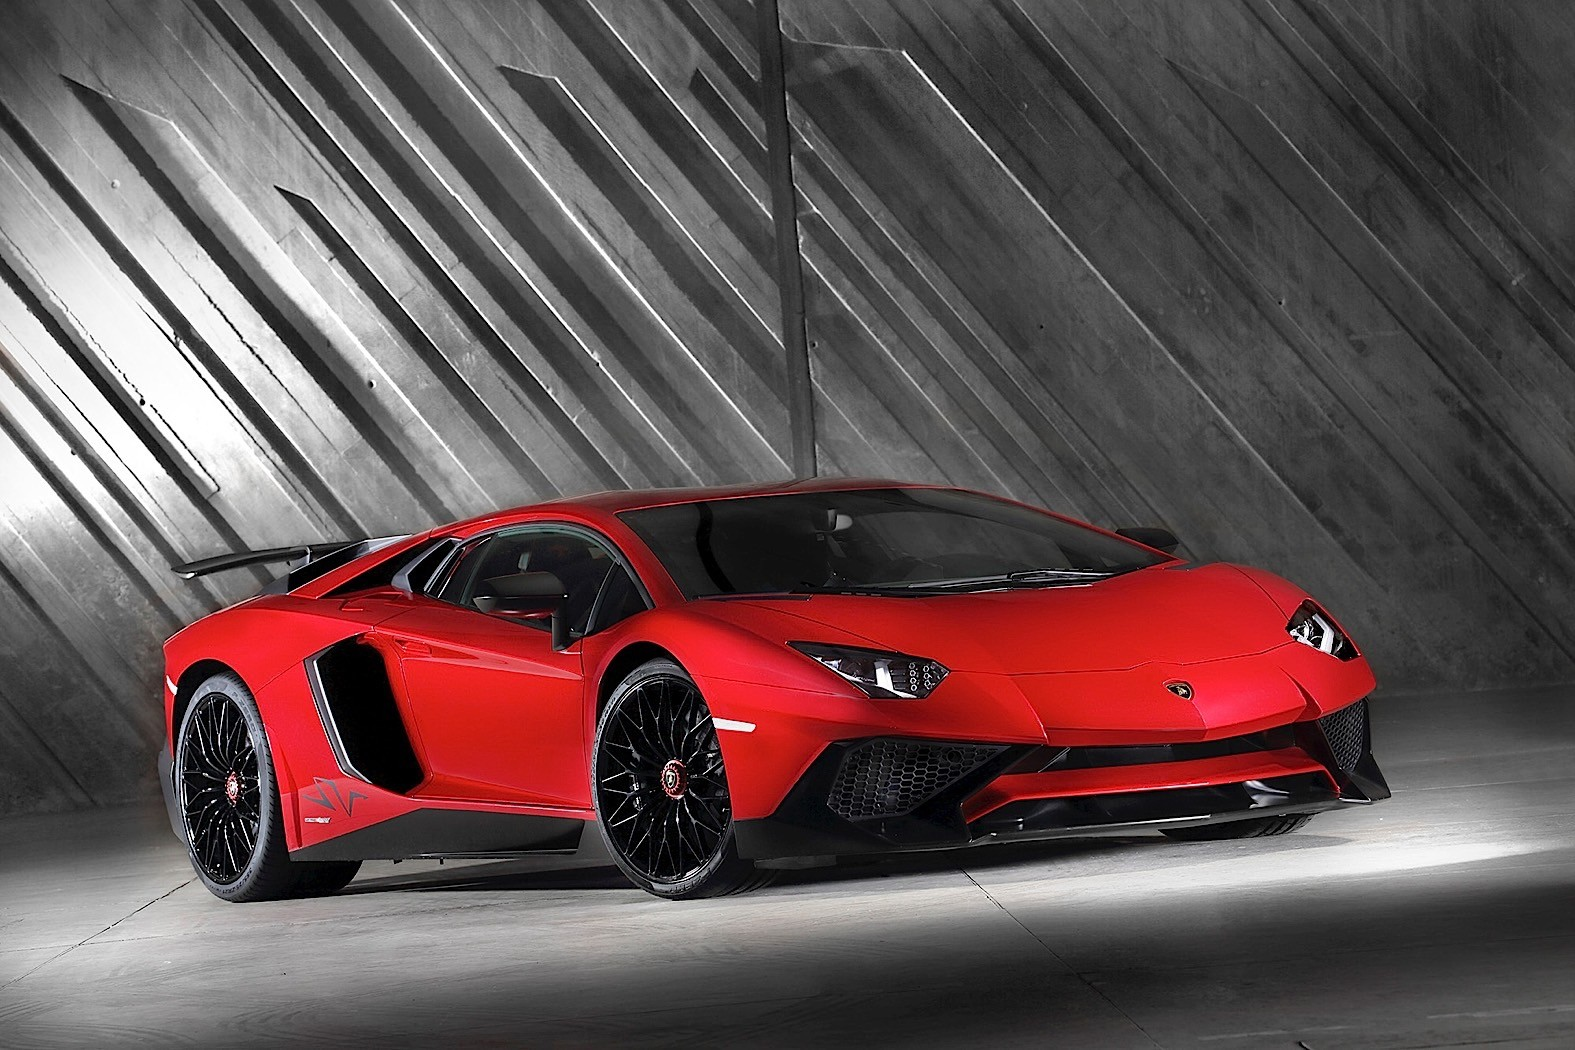 2017 lamborghini aventador lp 750 4 superveloce review autoevolution. Black Bedroom Furniture Sets. Home Design Ideas